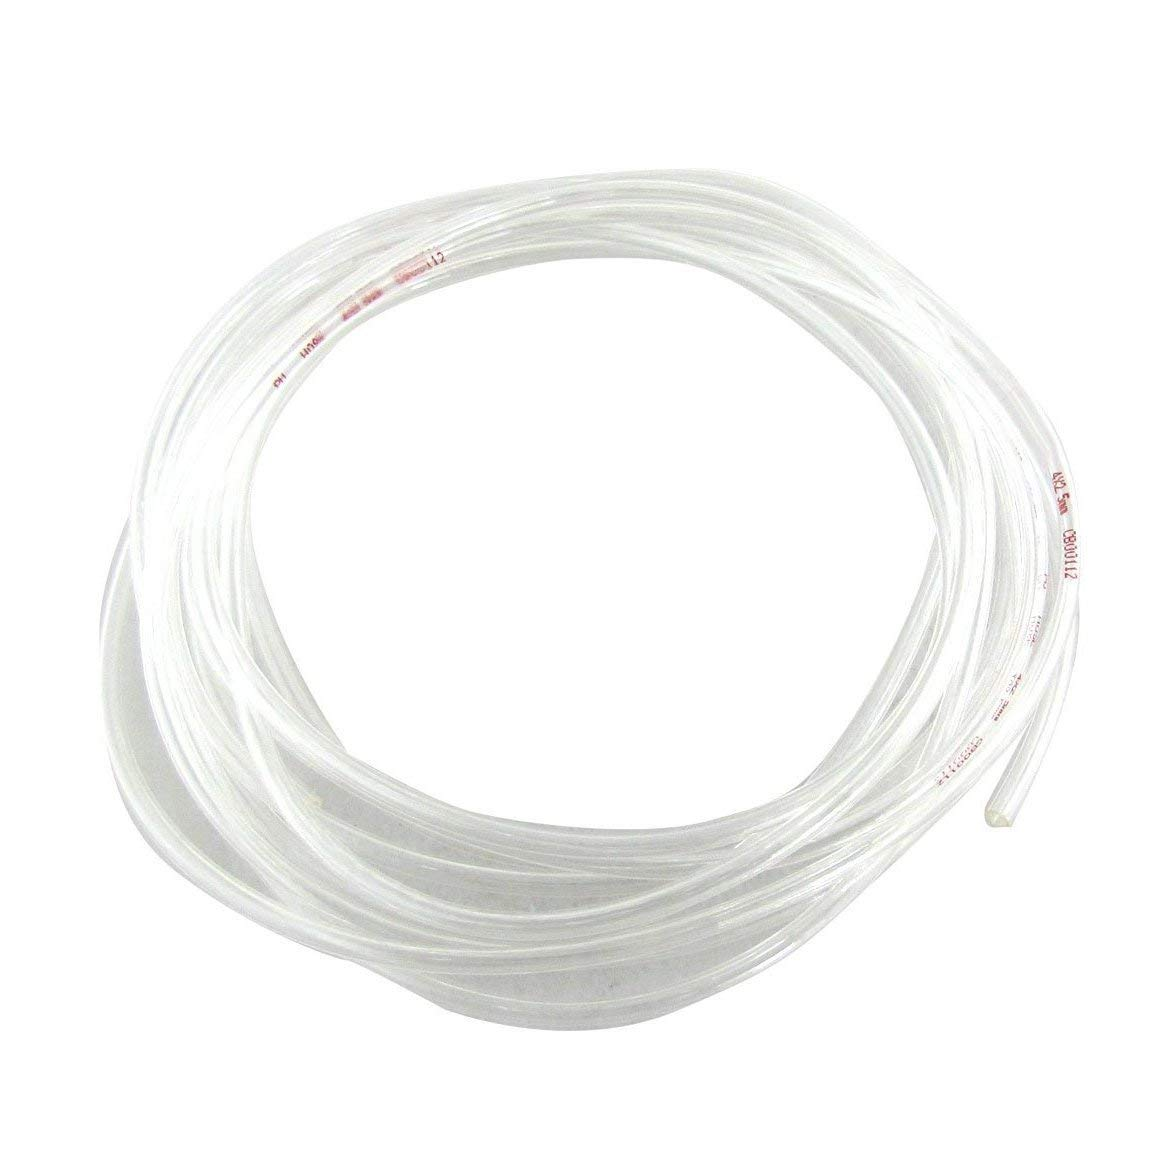 Transparent 4 M 13.1 Ft 4 Mm X 2.5 Mm Pneumatic Polyurethane Air Hose